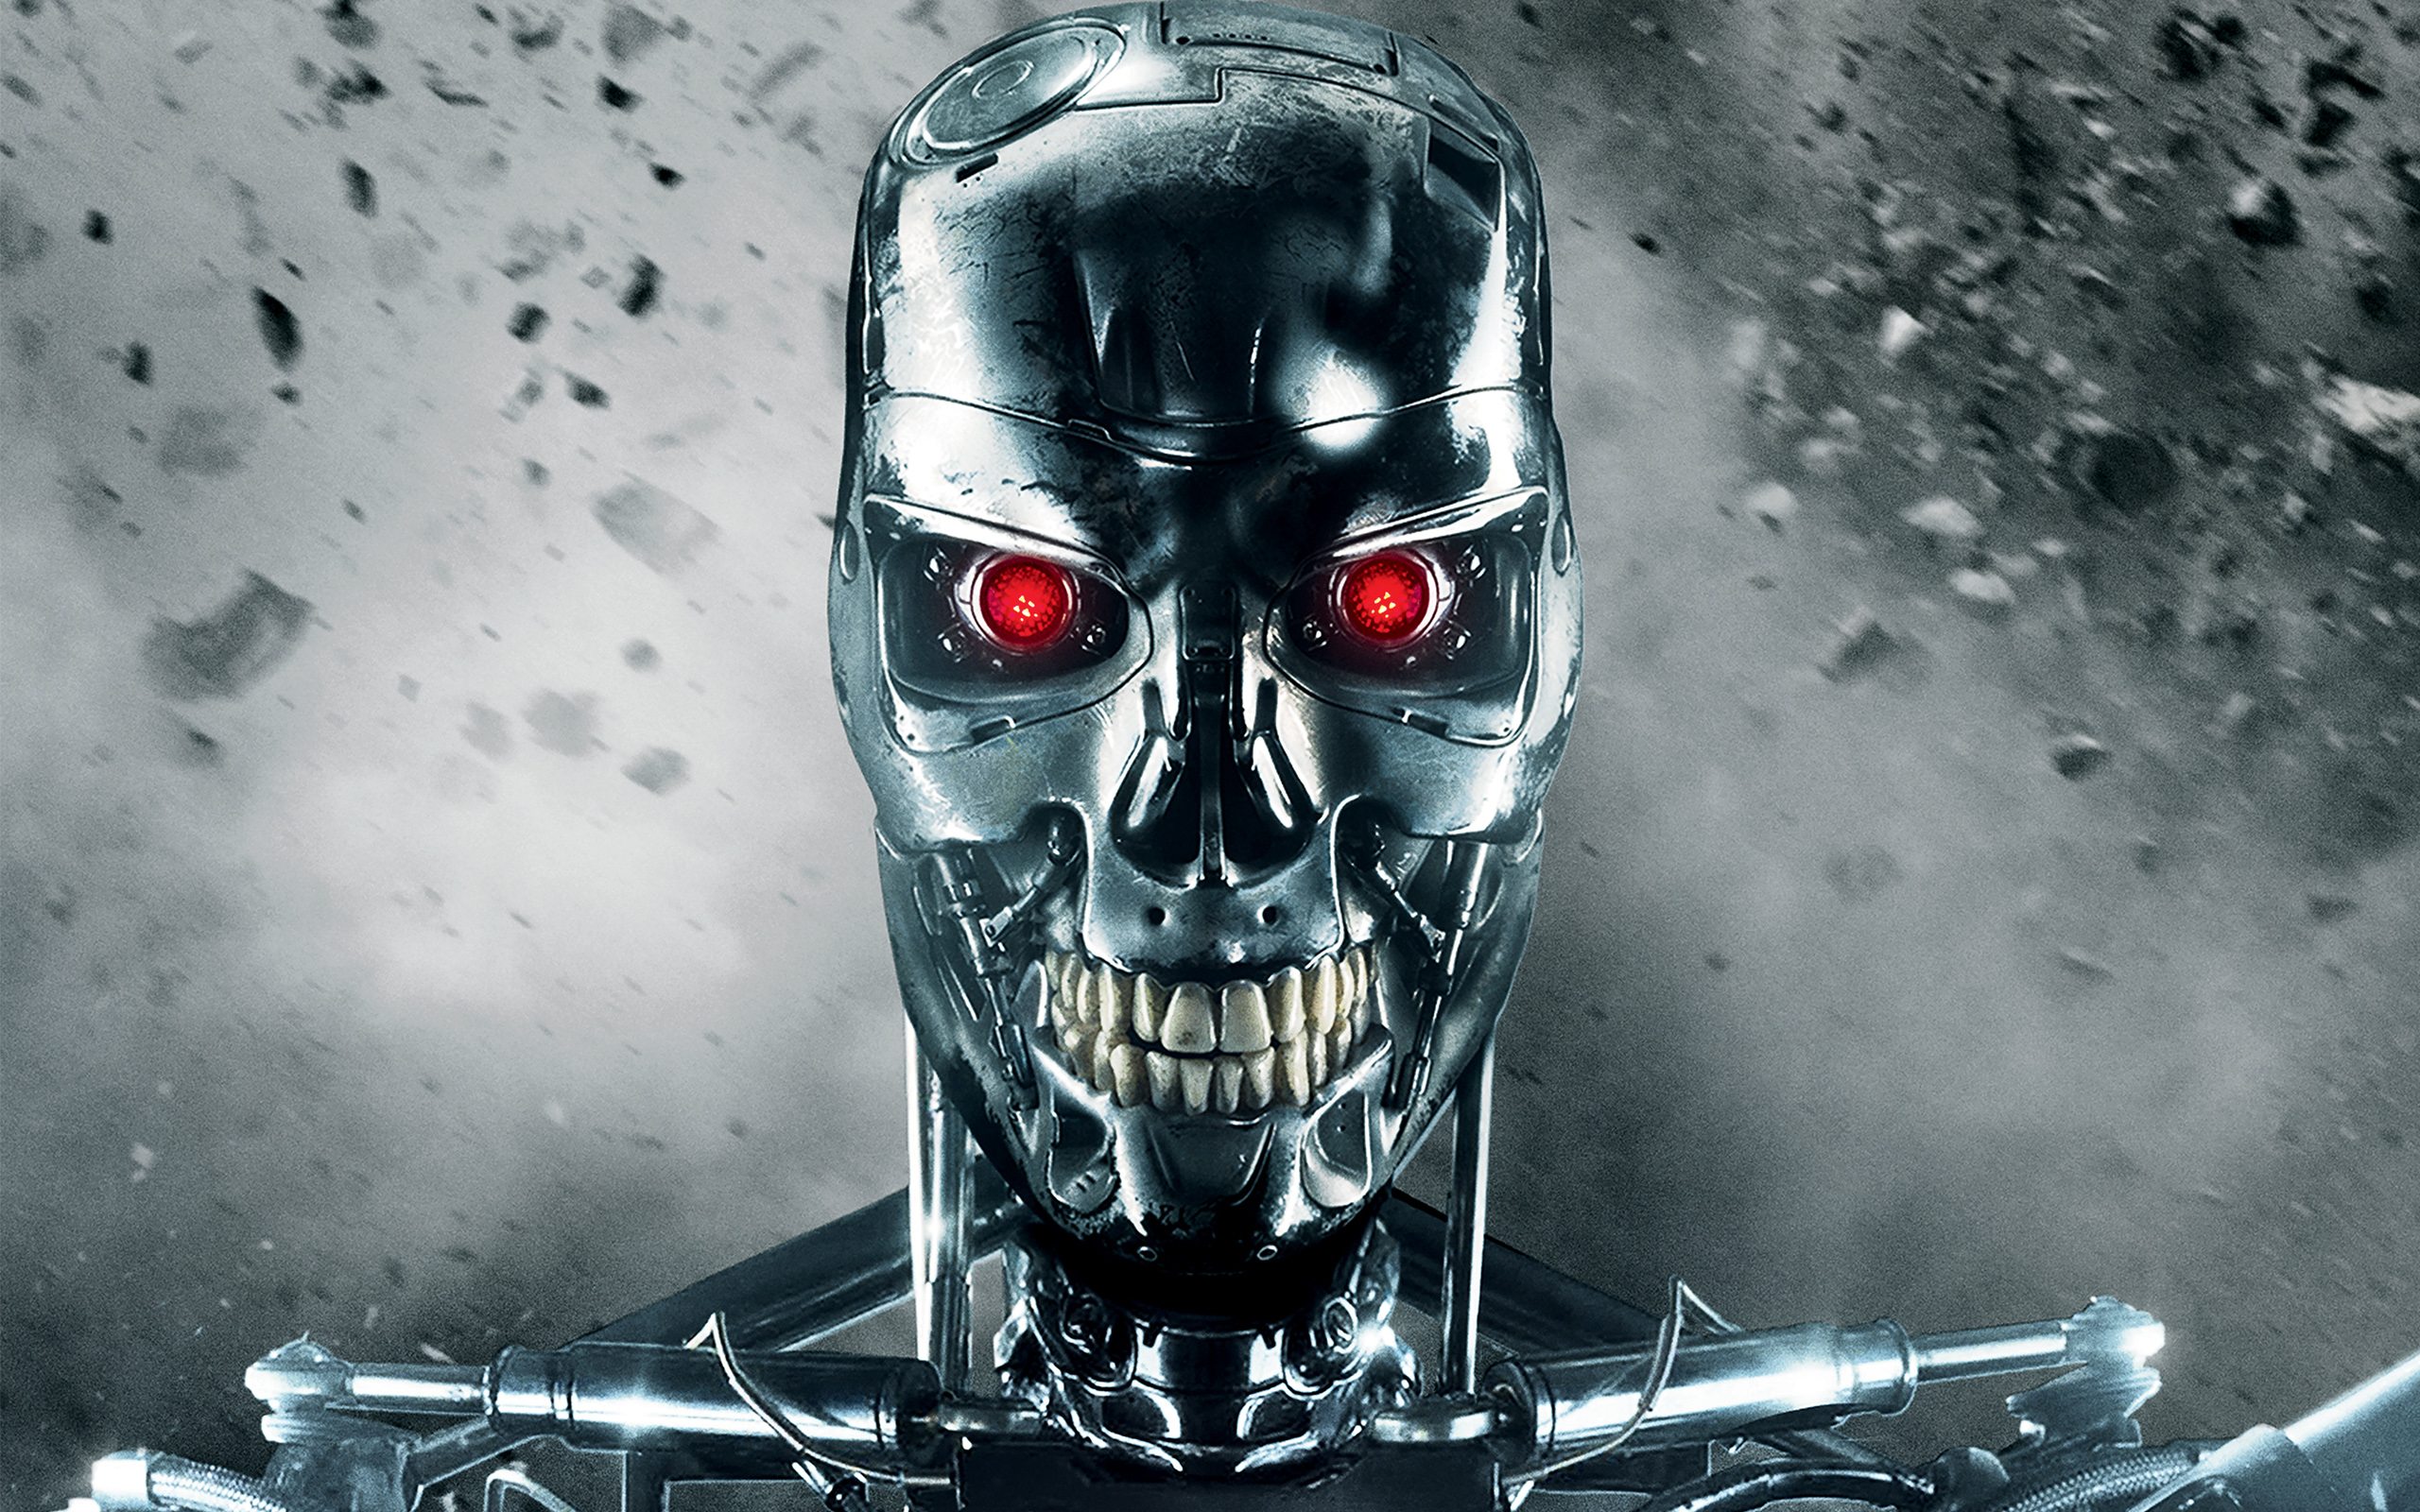 Terminator Genisys HD Wallpaper Background Image 2560x1600 2560x1600